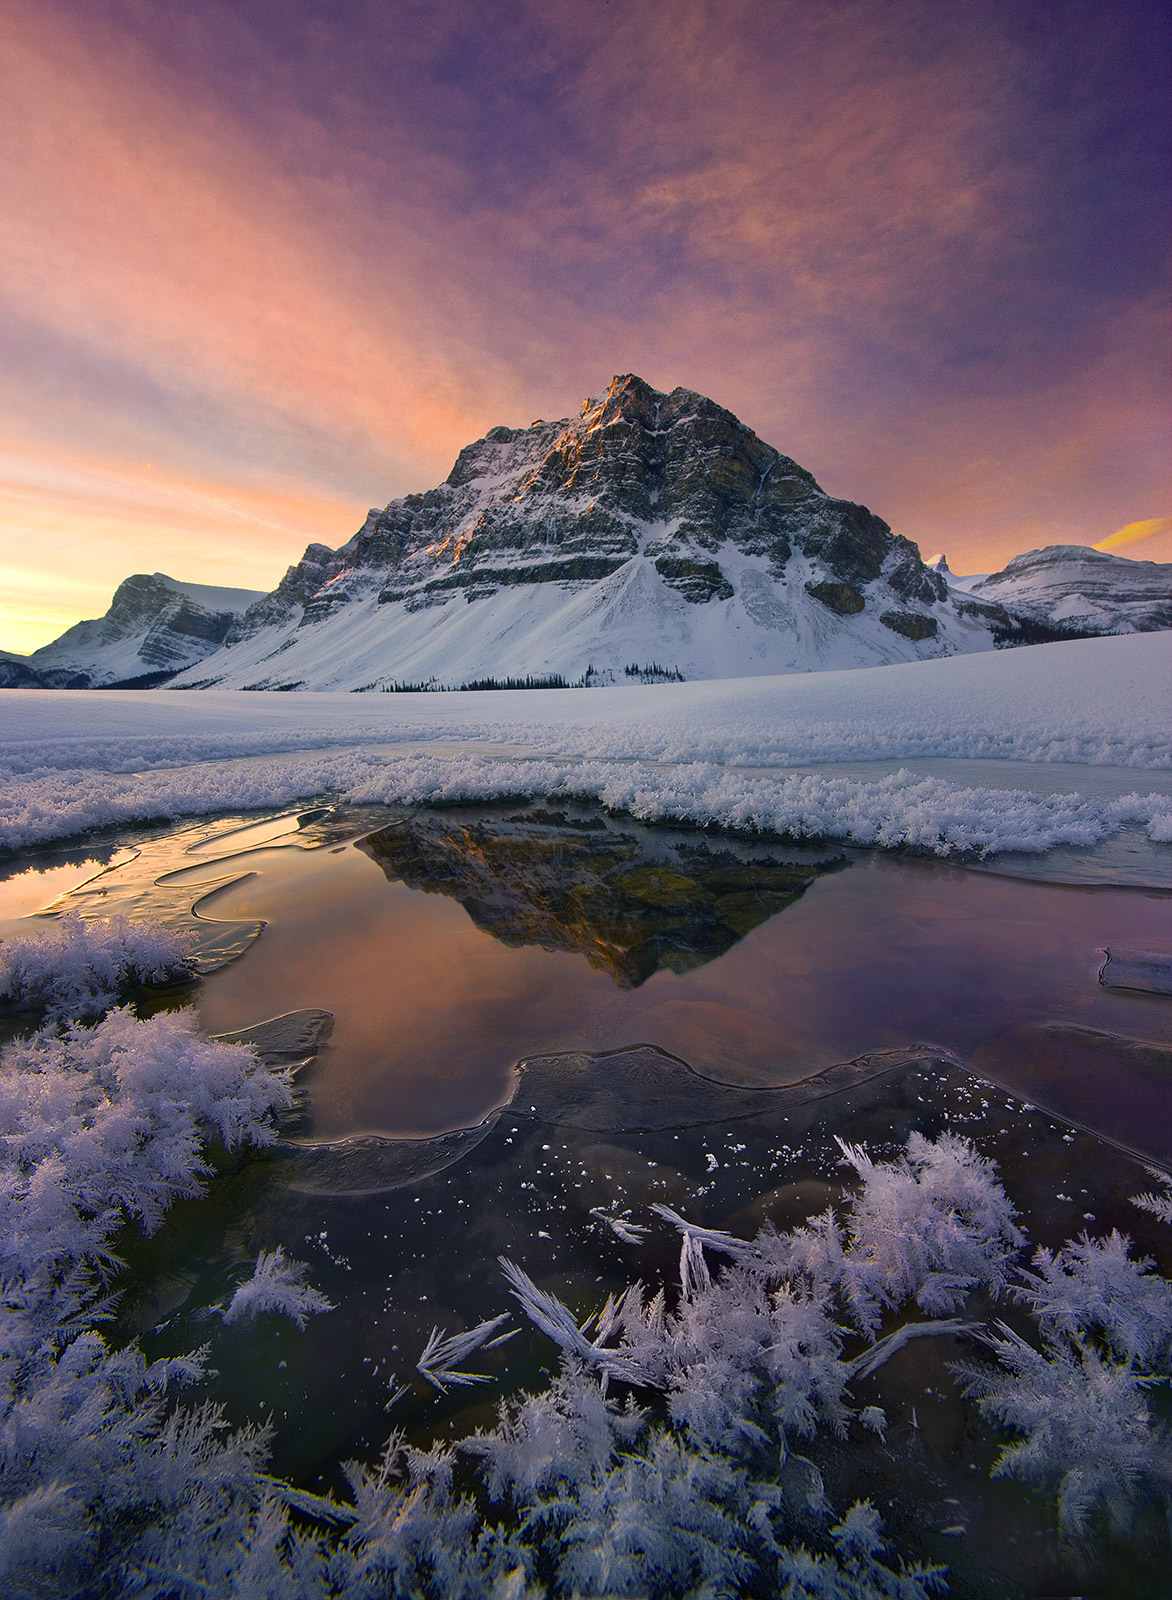 hoar frost, ice, bow lake, canadian rockies, sunrise, photo